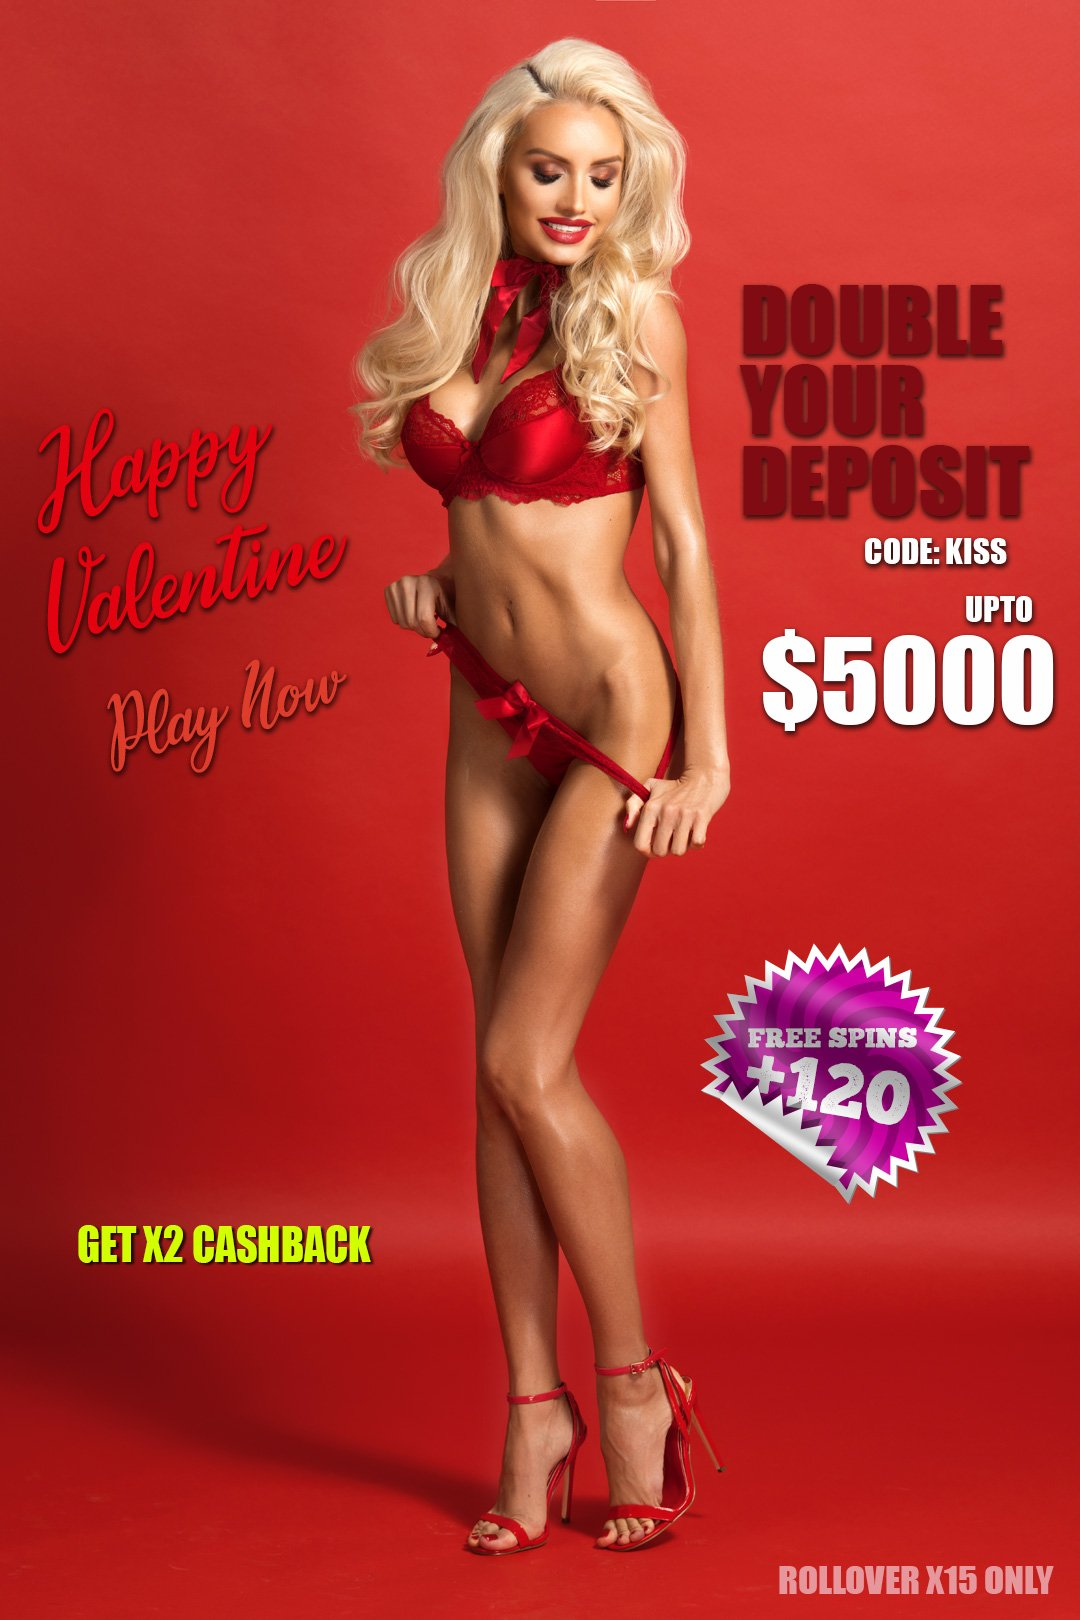 valentine-s-casino-bonus-100-match-bonus-up-to-5000-120-free-spins